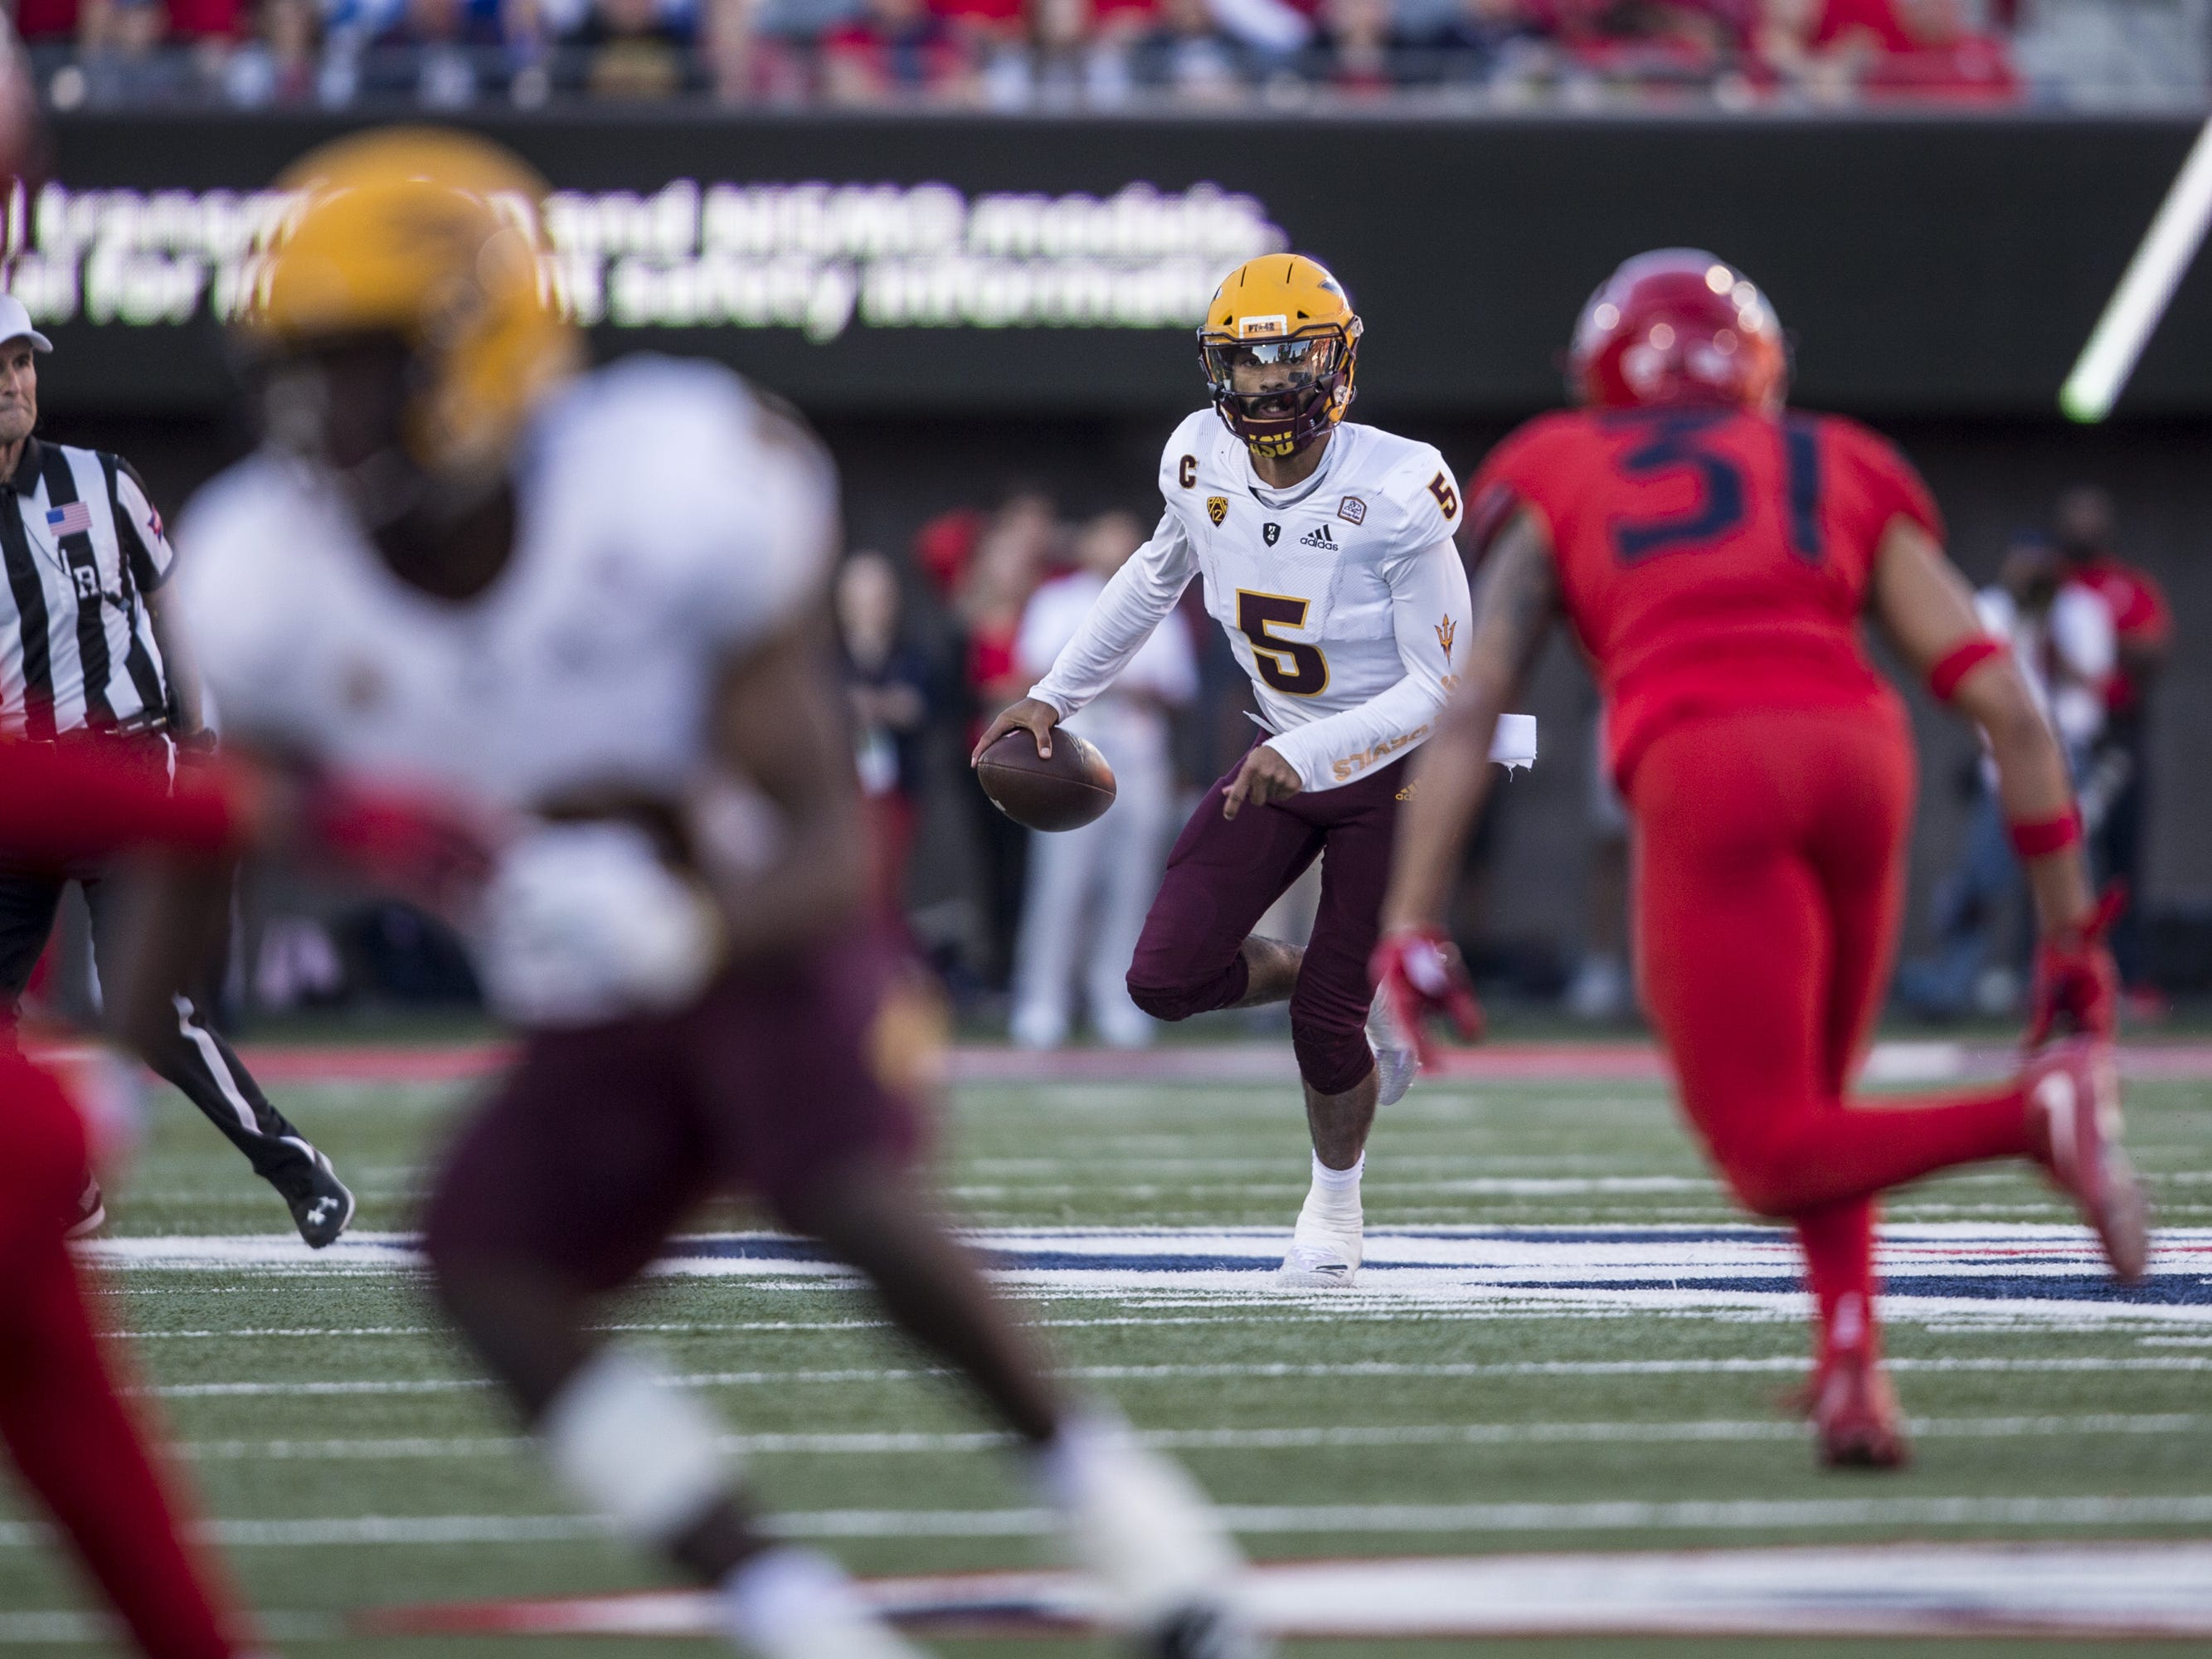 Arizona State's Manny Wilkins looks to pass against Arizona during the second half of the Territorial Cup on Saturday, Nov. 24, 2018, at Arizona Stadium in Tucson, Ariz. Arizona State won, 41-40.